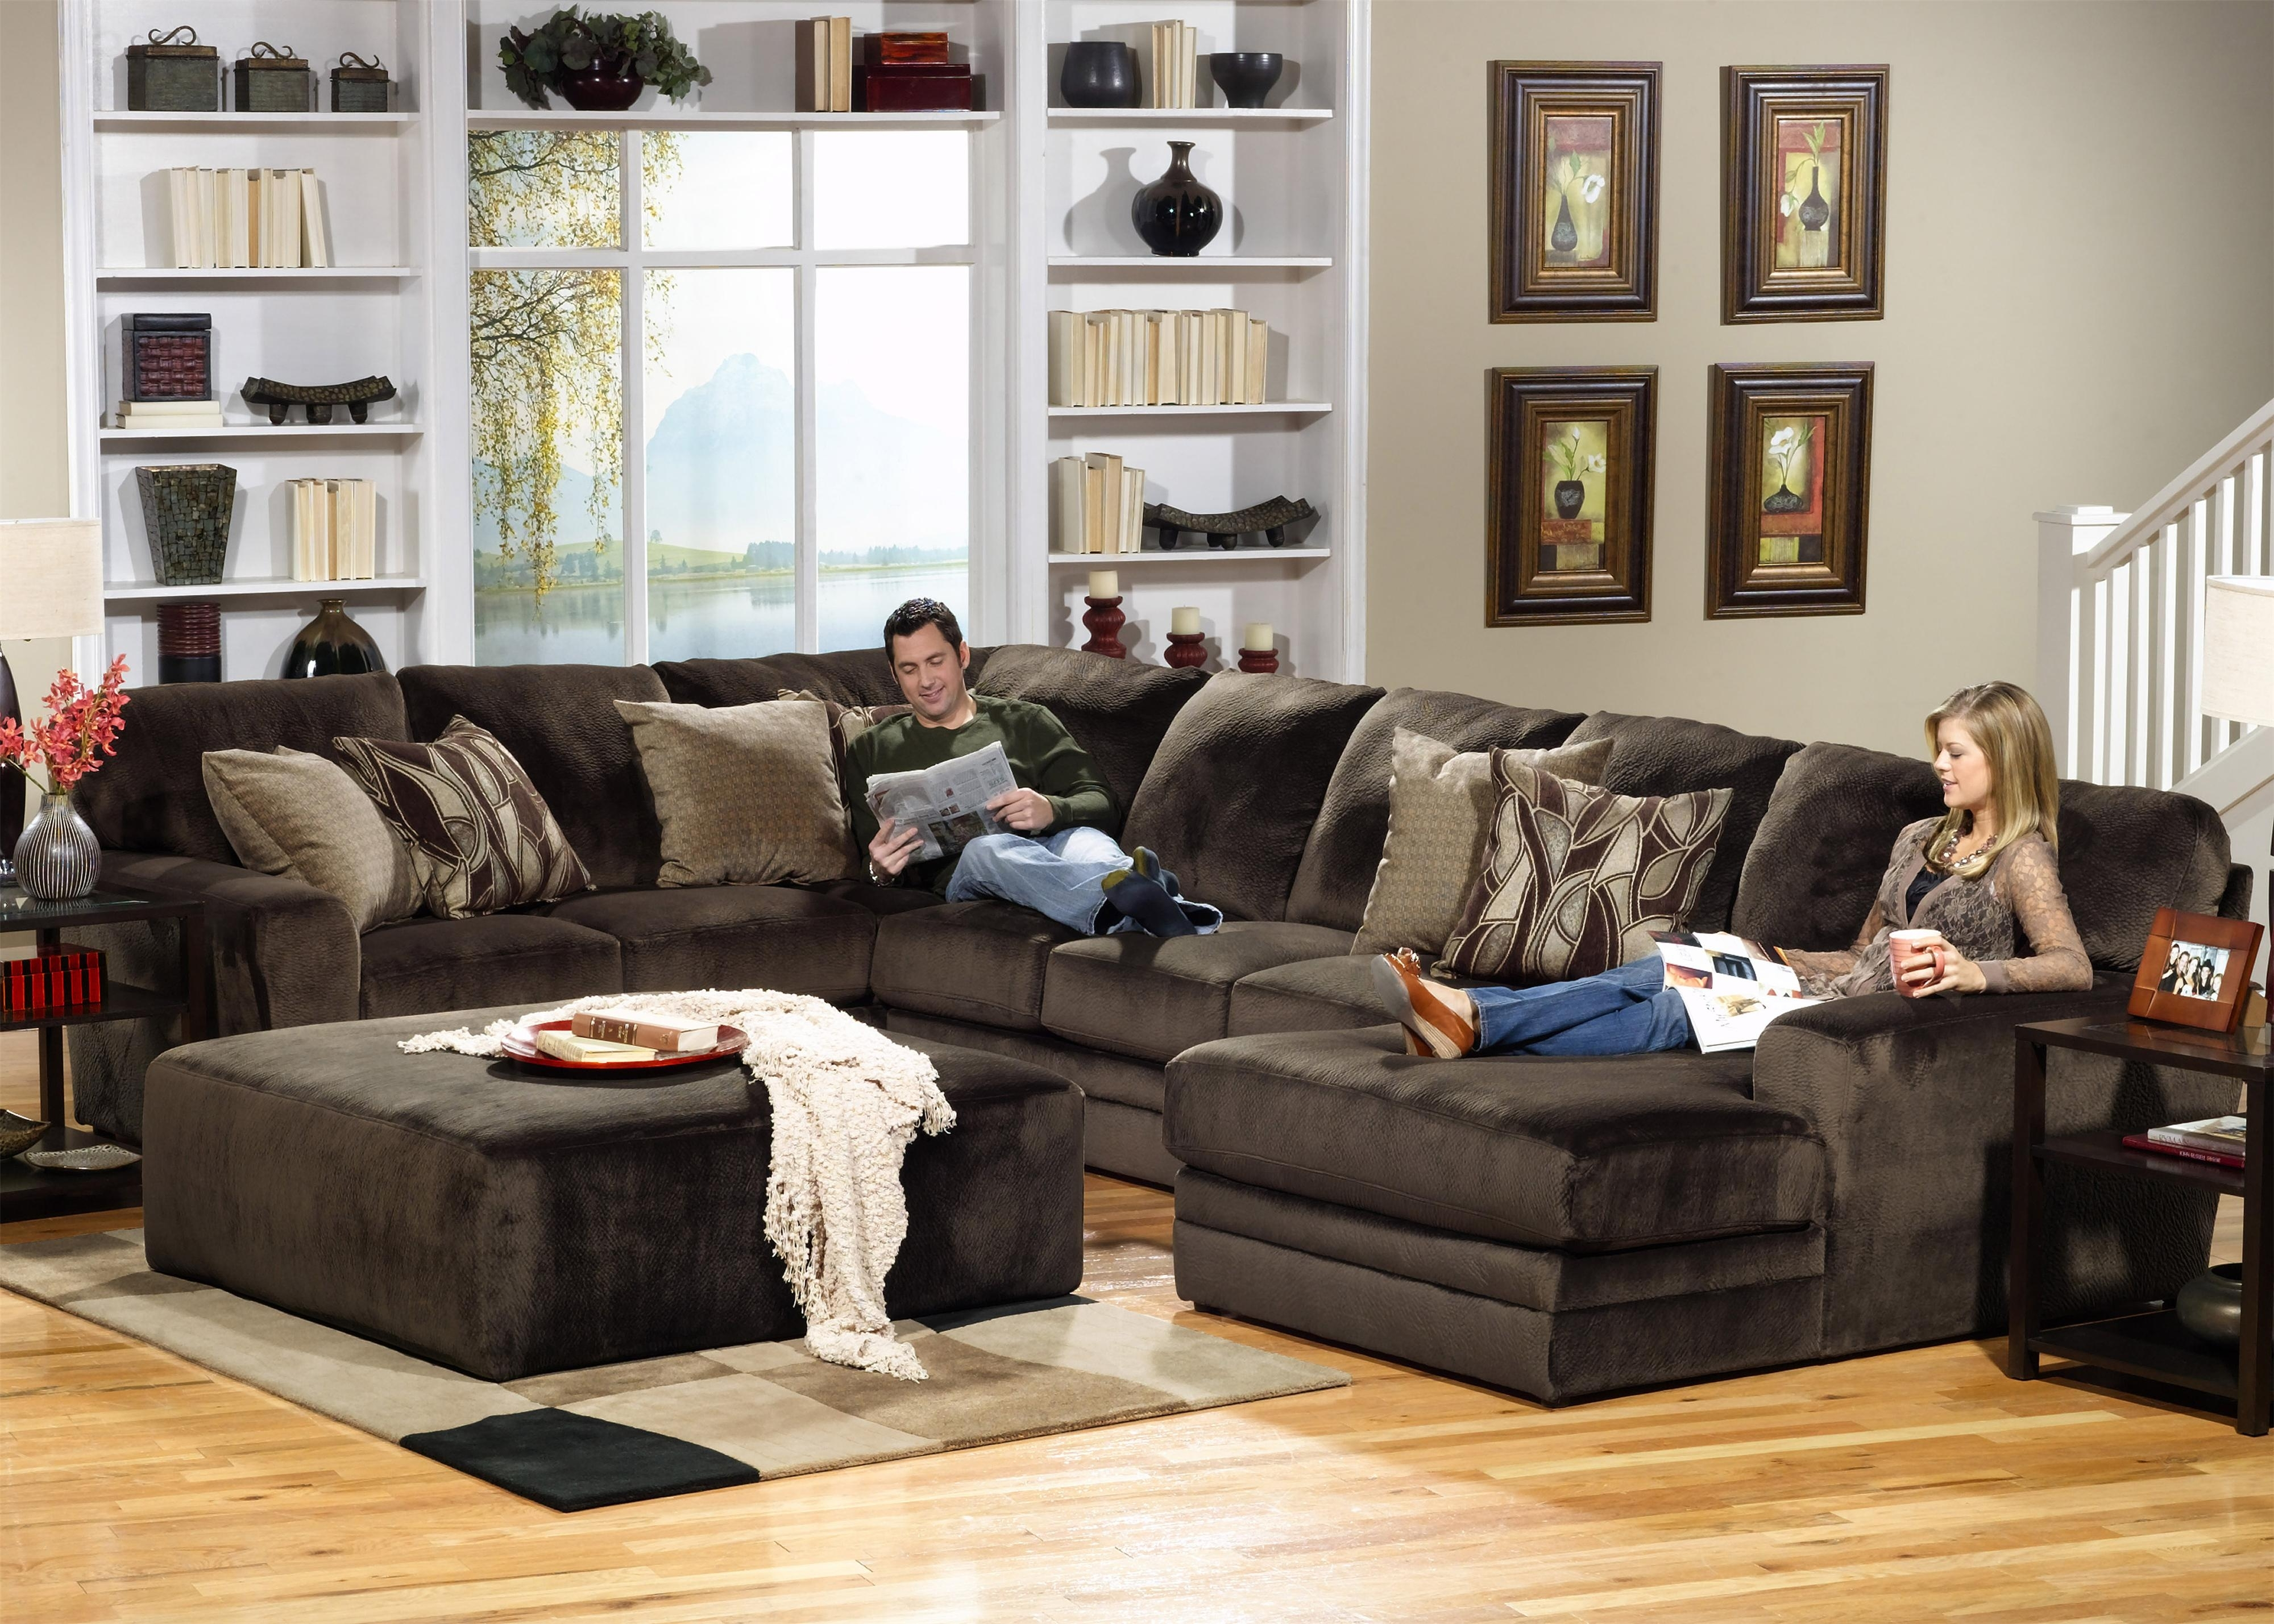 Jackson Furniture 4377 Everest 3 Piece Sectional With Lsf Section in Evansville In Sectional Sofas (Image 7 of 10)